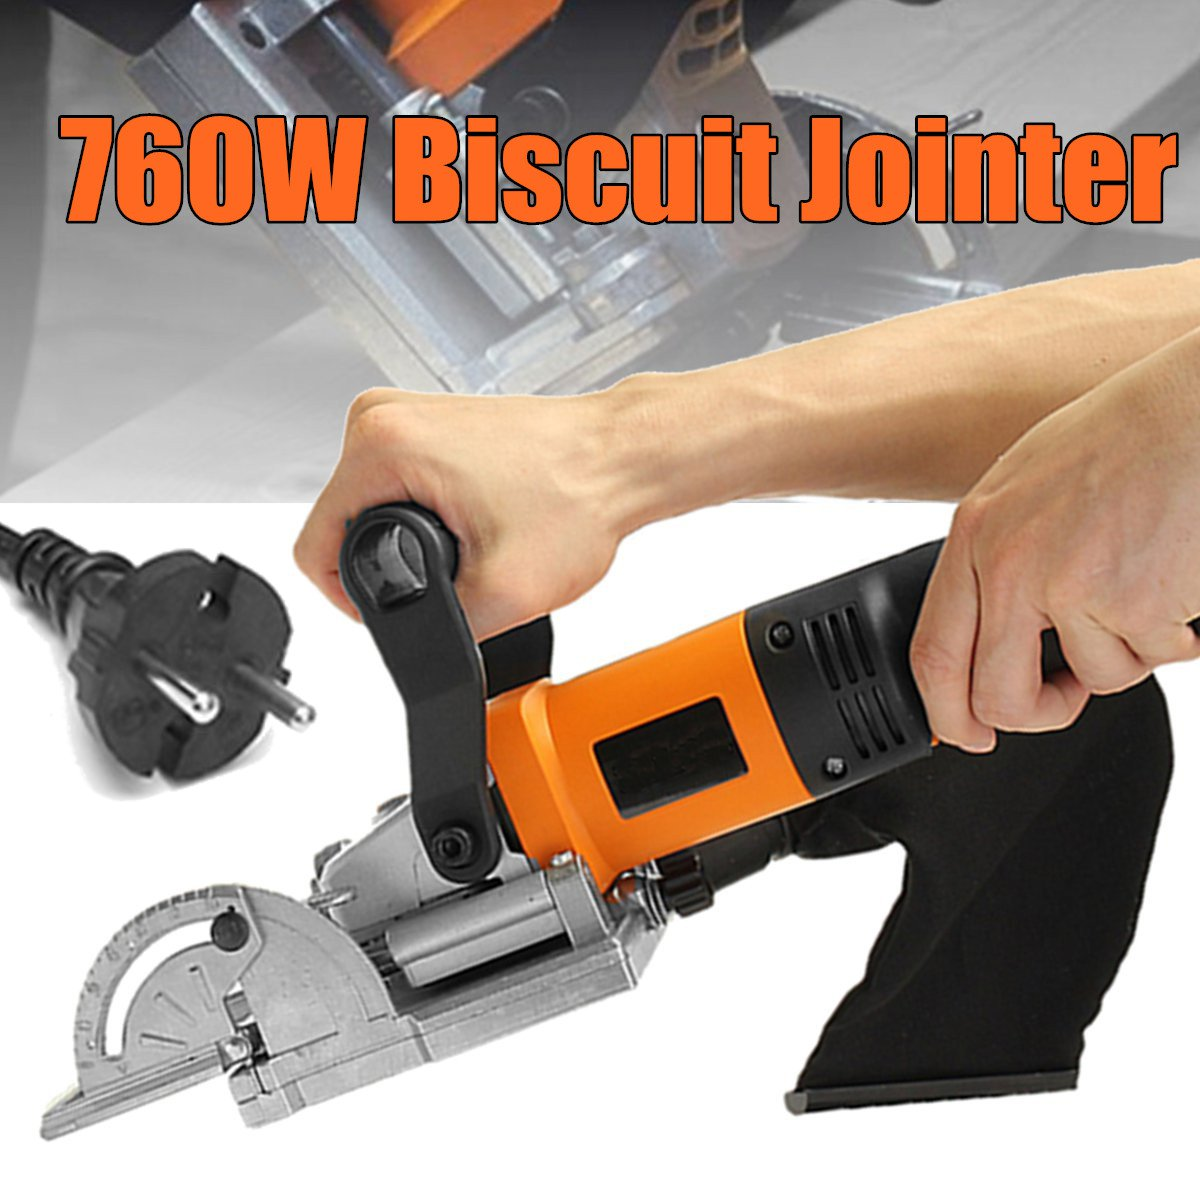 Drillpro 760W Biscuit Jointer Wood Working Tenoning Machine Biscuit Machine Puzzle Machine Groover